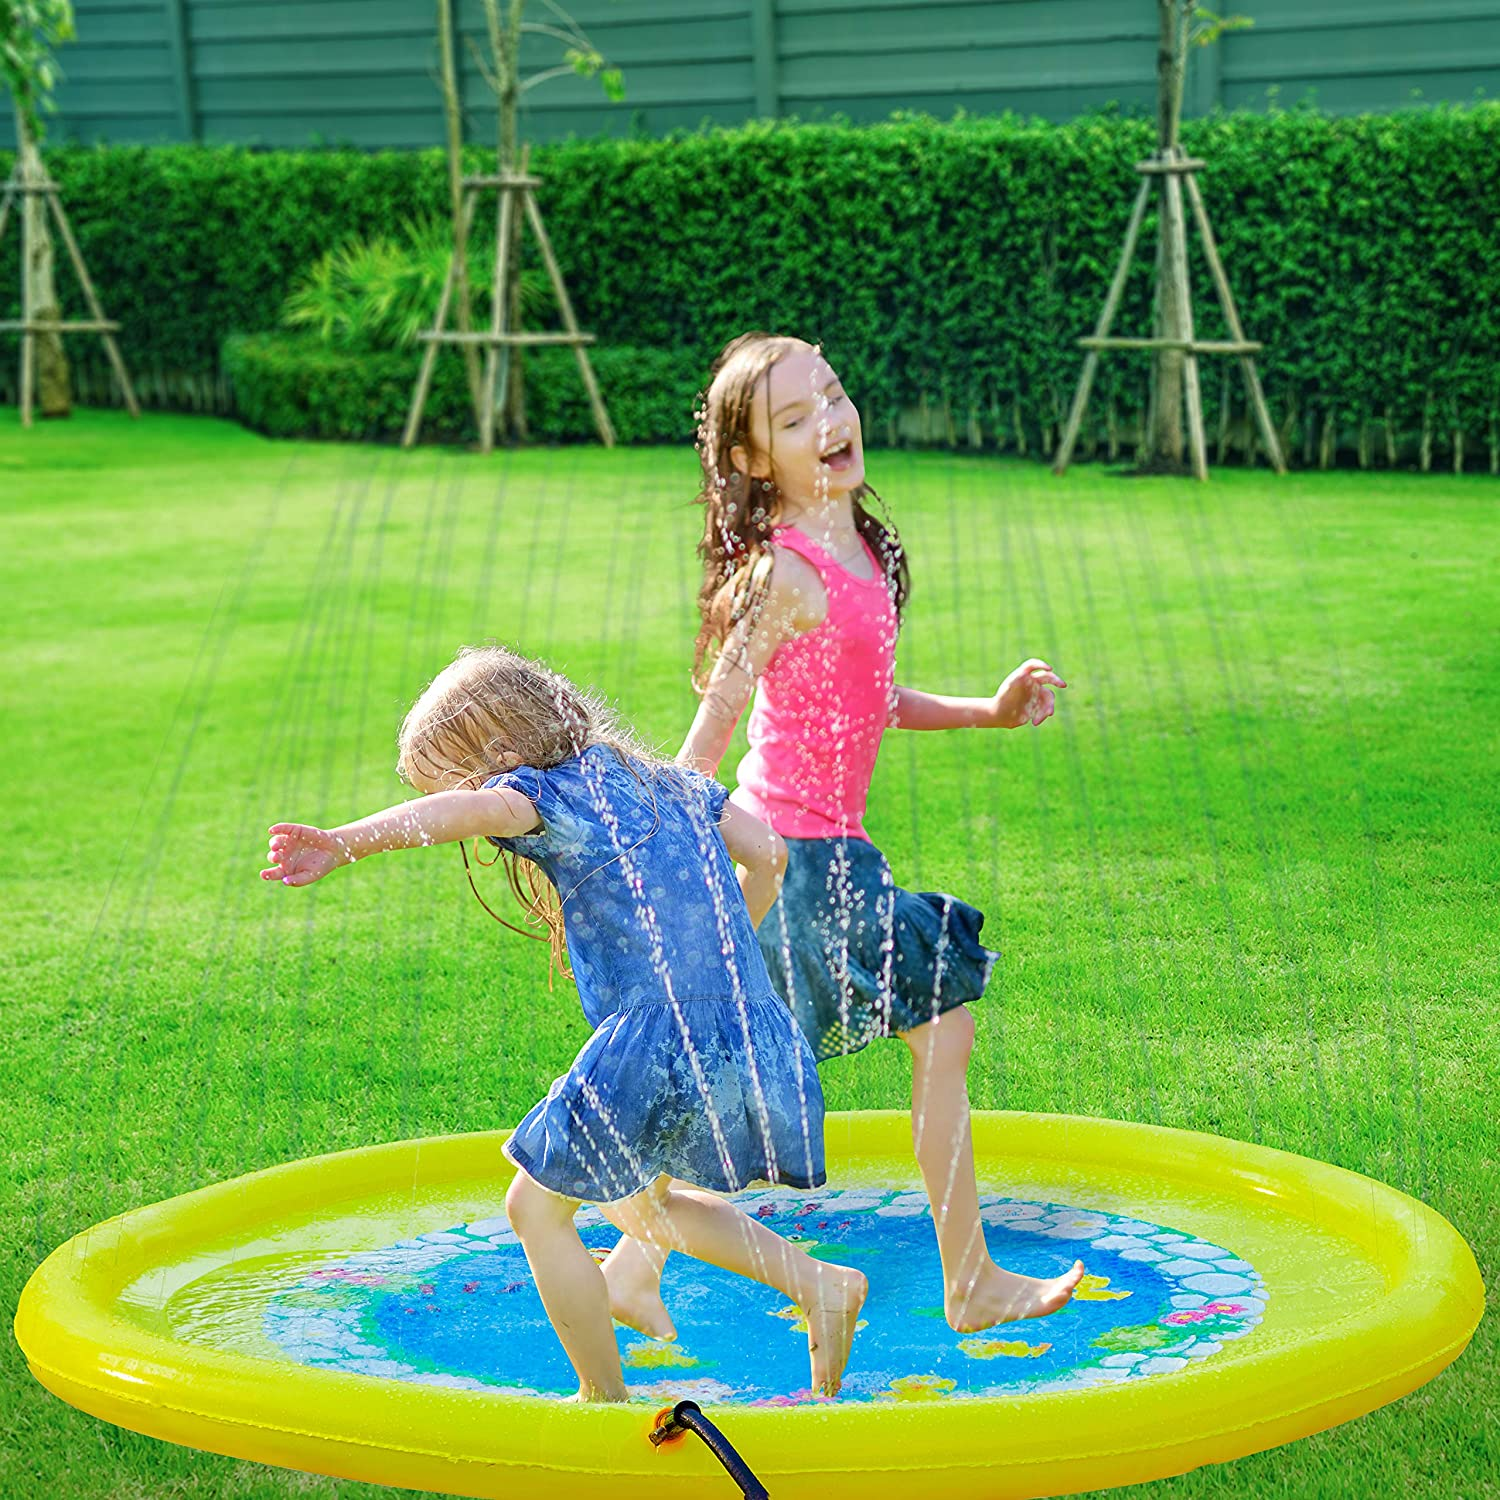 "Splashin'kids 68"" Sprinkle and Splash Play Mat Pad Toy for Children Infants Toddlers,Boys, Girls and Kids - Perfect Inflatable Outdoor Sprinkler pad best summer water toy"